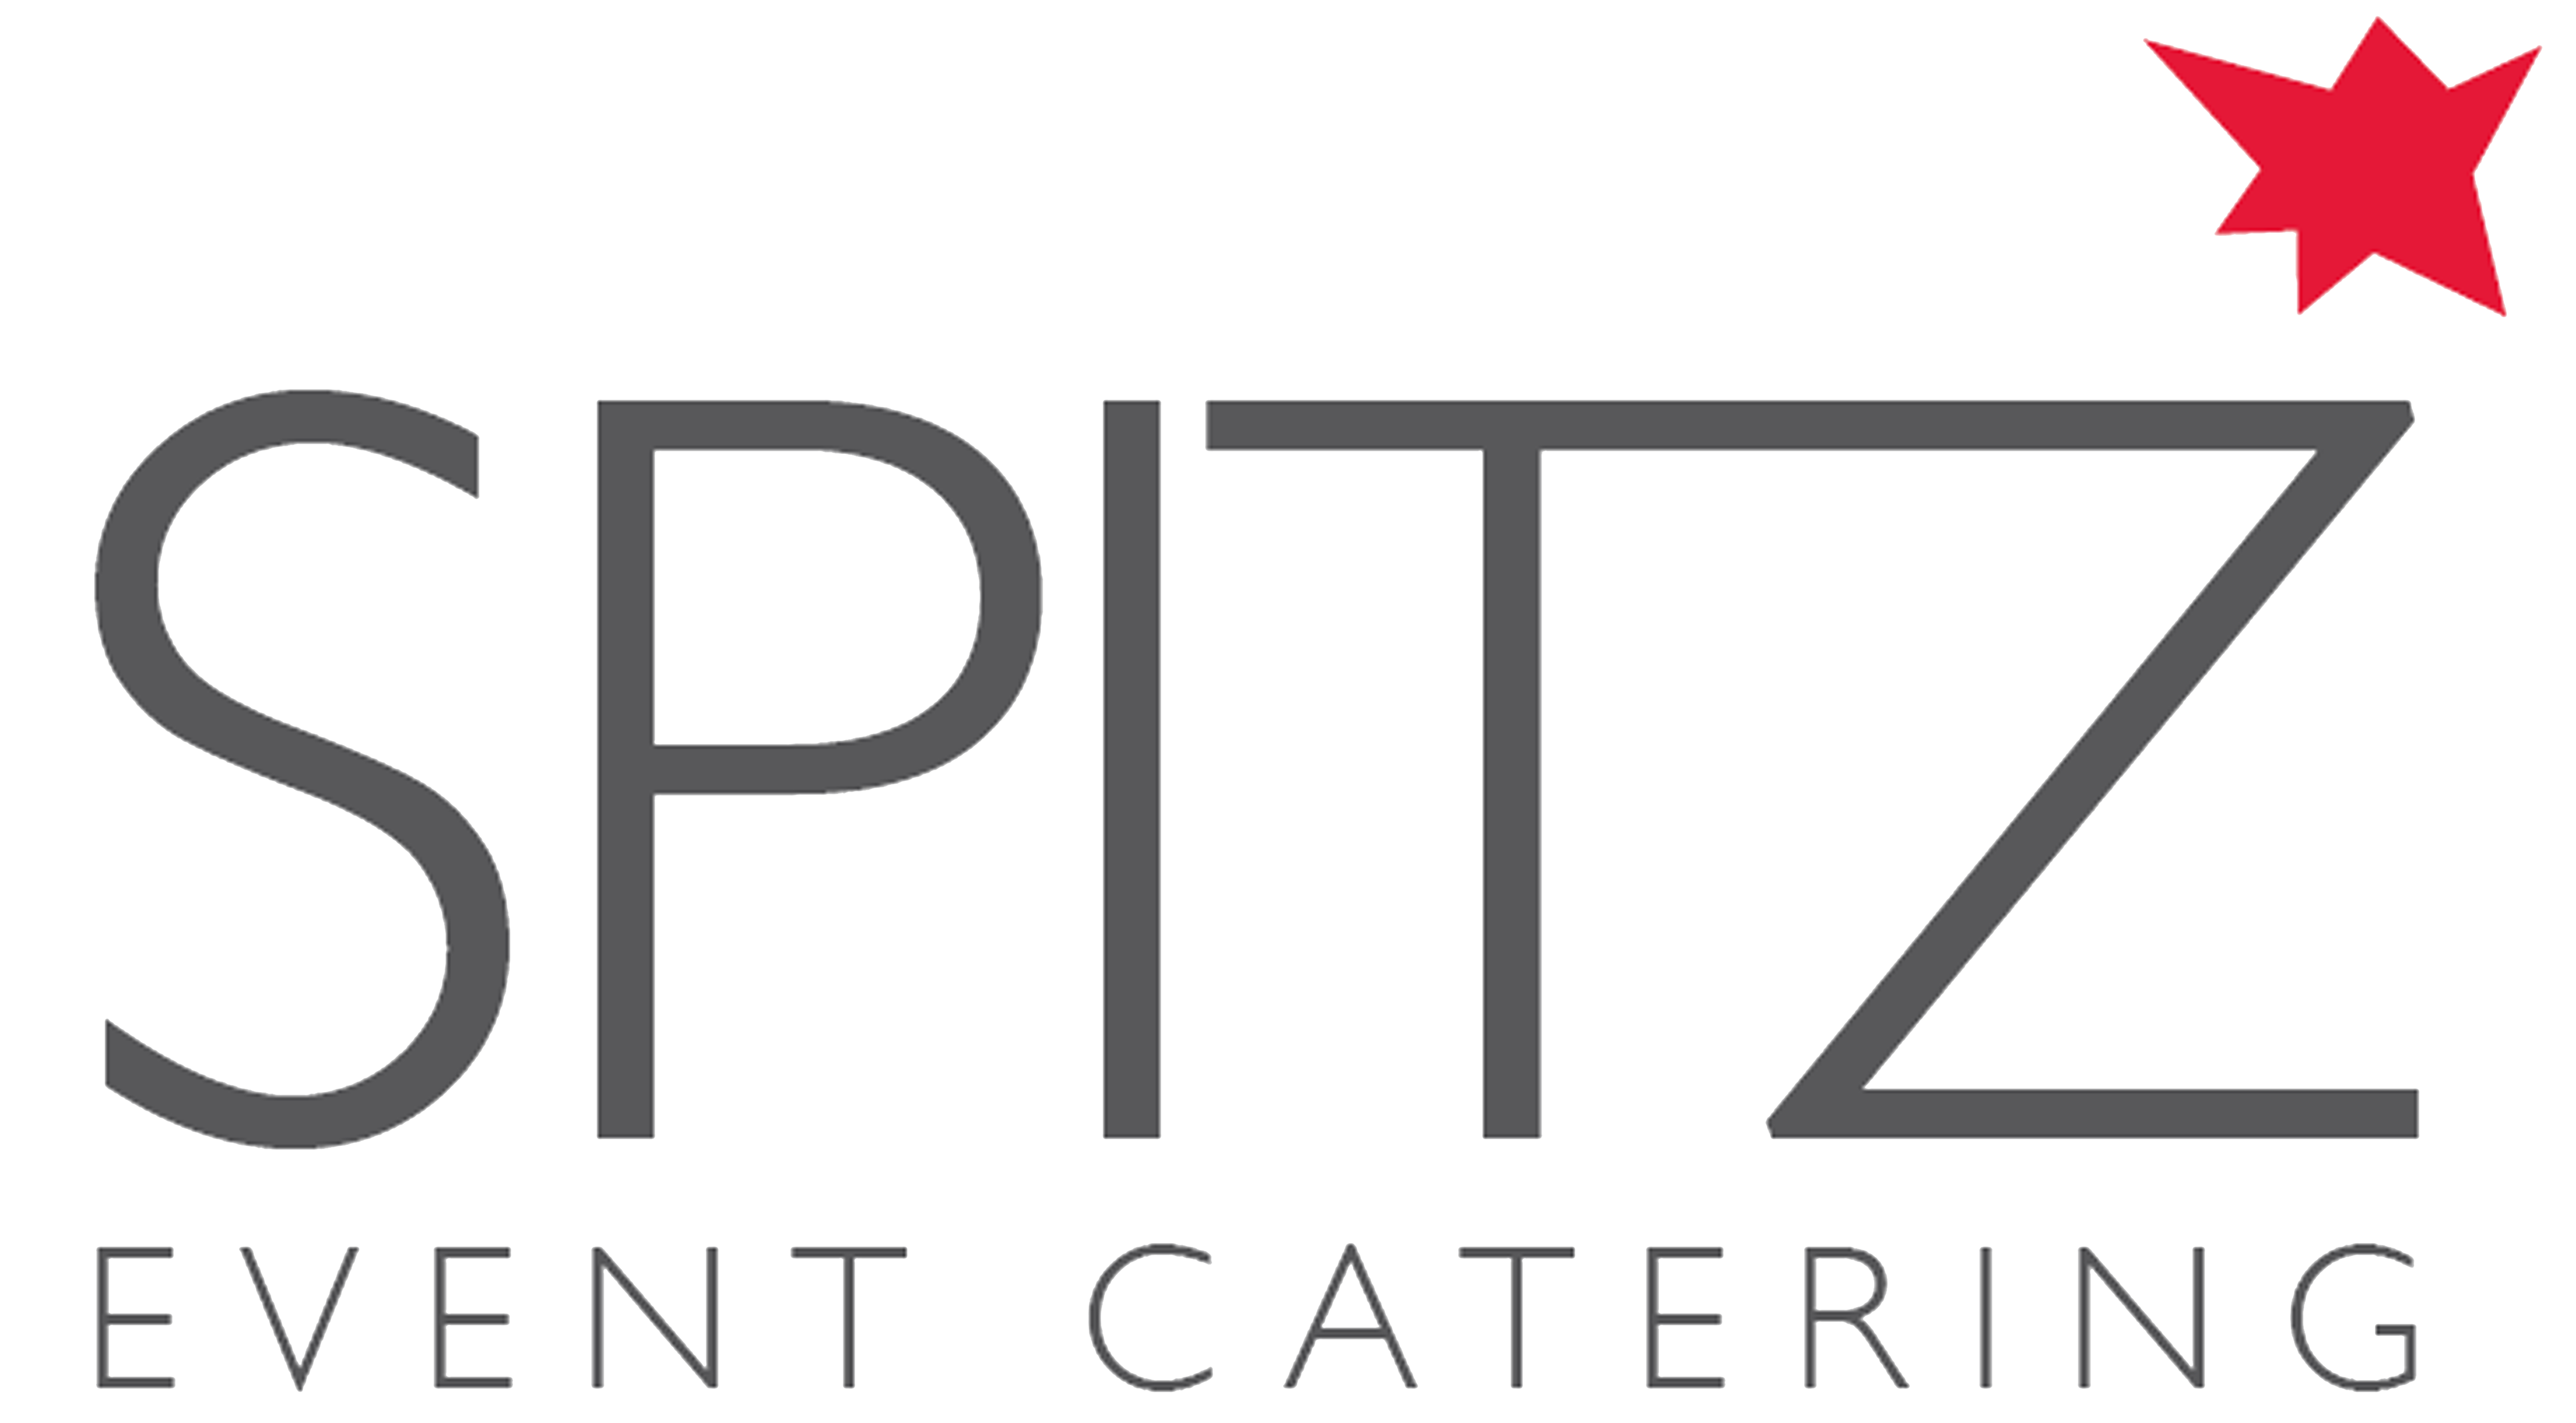 SPITZ EVENT CATERING